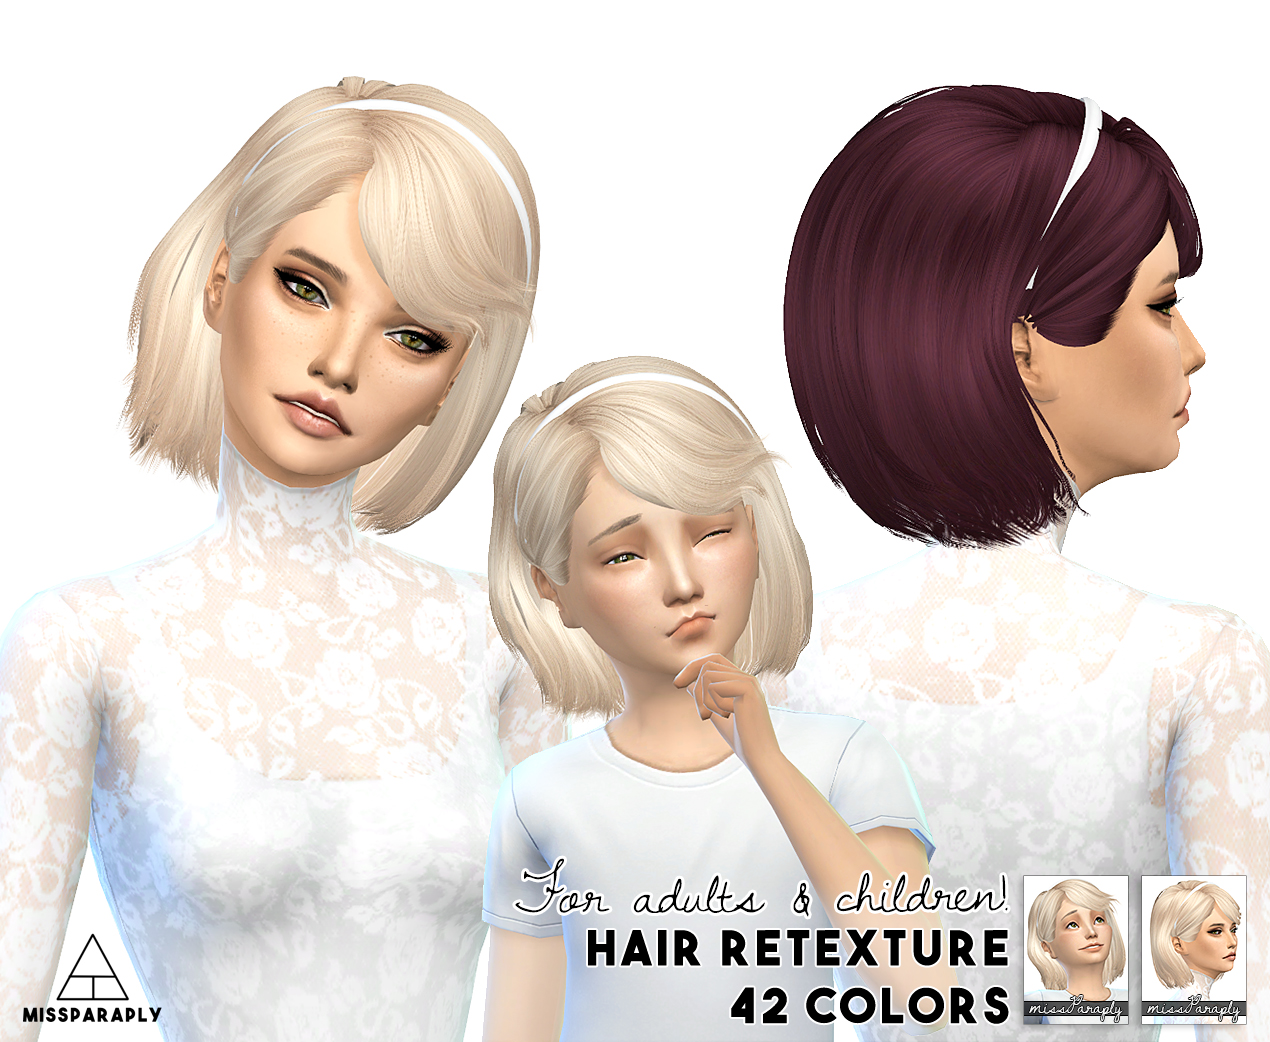 Sims 4 Hairs Miss Paraply Maysims 46 Hairstyle Retextured